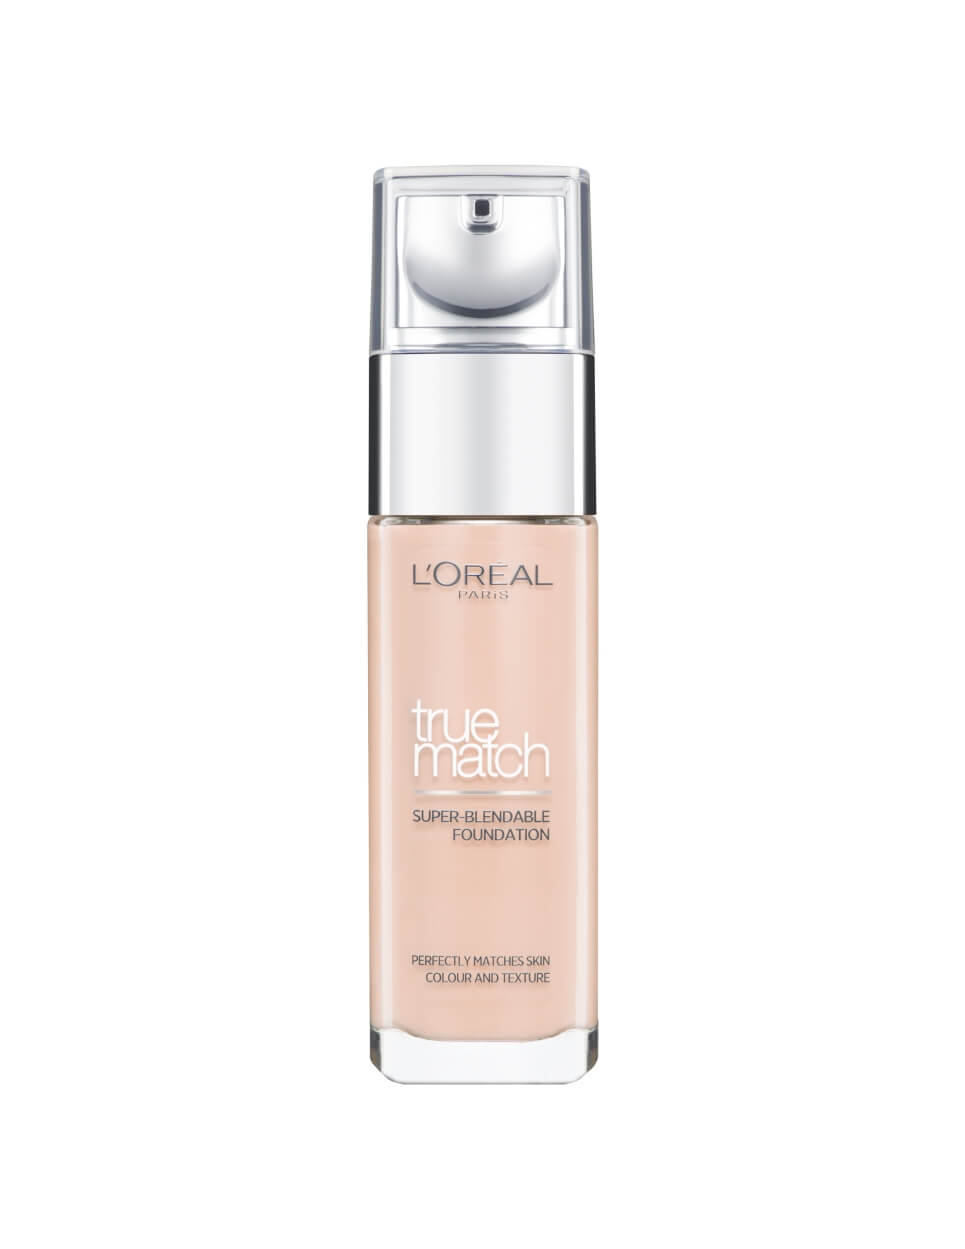 L'Oreal True Match Foundation for dry skin